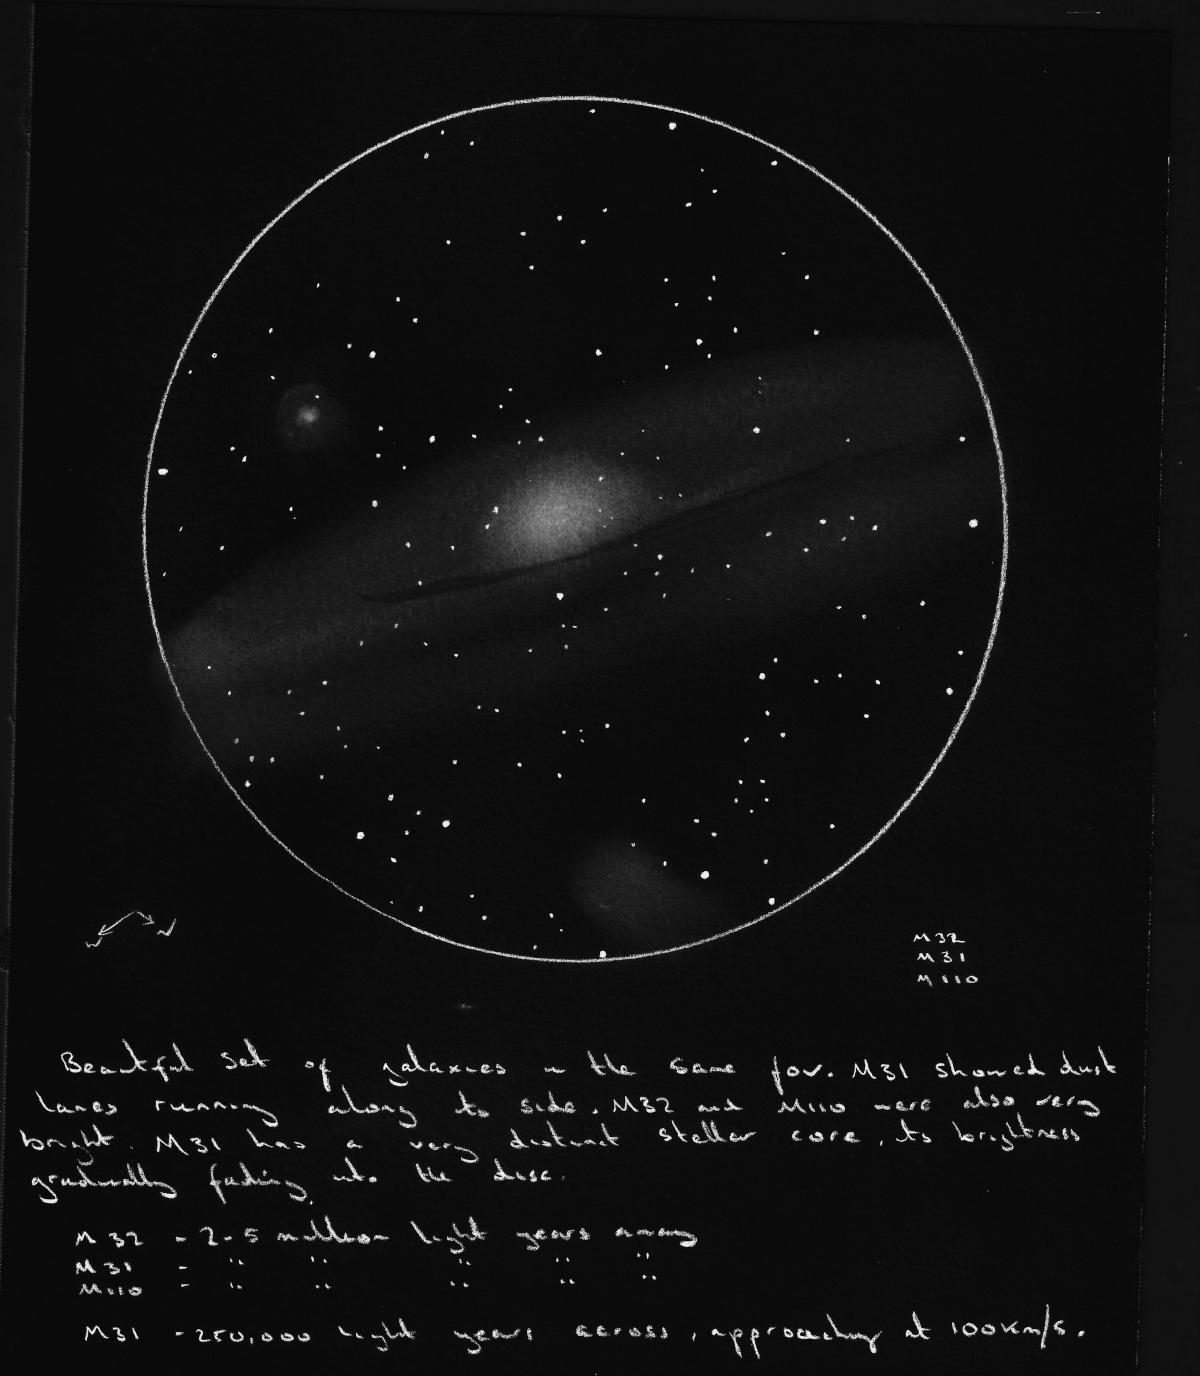 Andromeda Galaxy Through Binoculars 15 X 70 (page 2) - Pics About Space